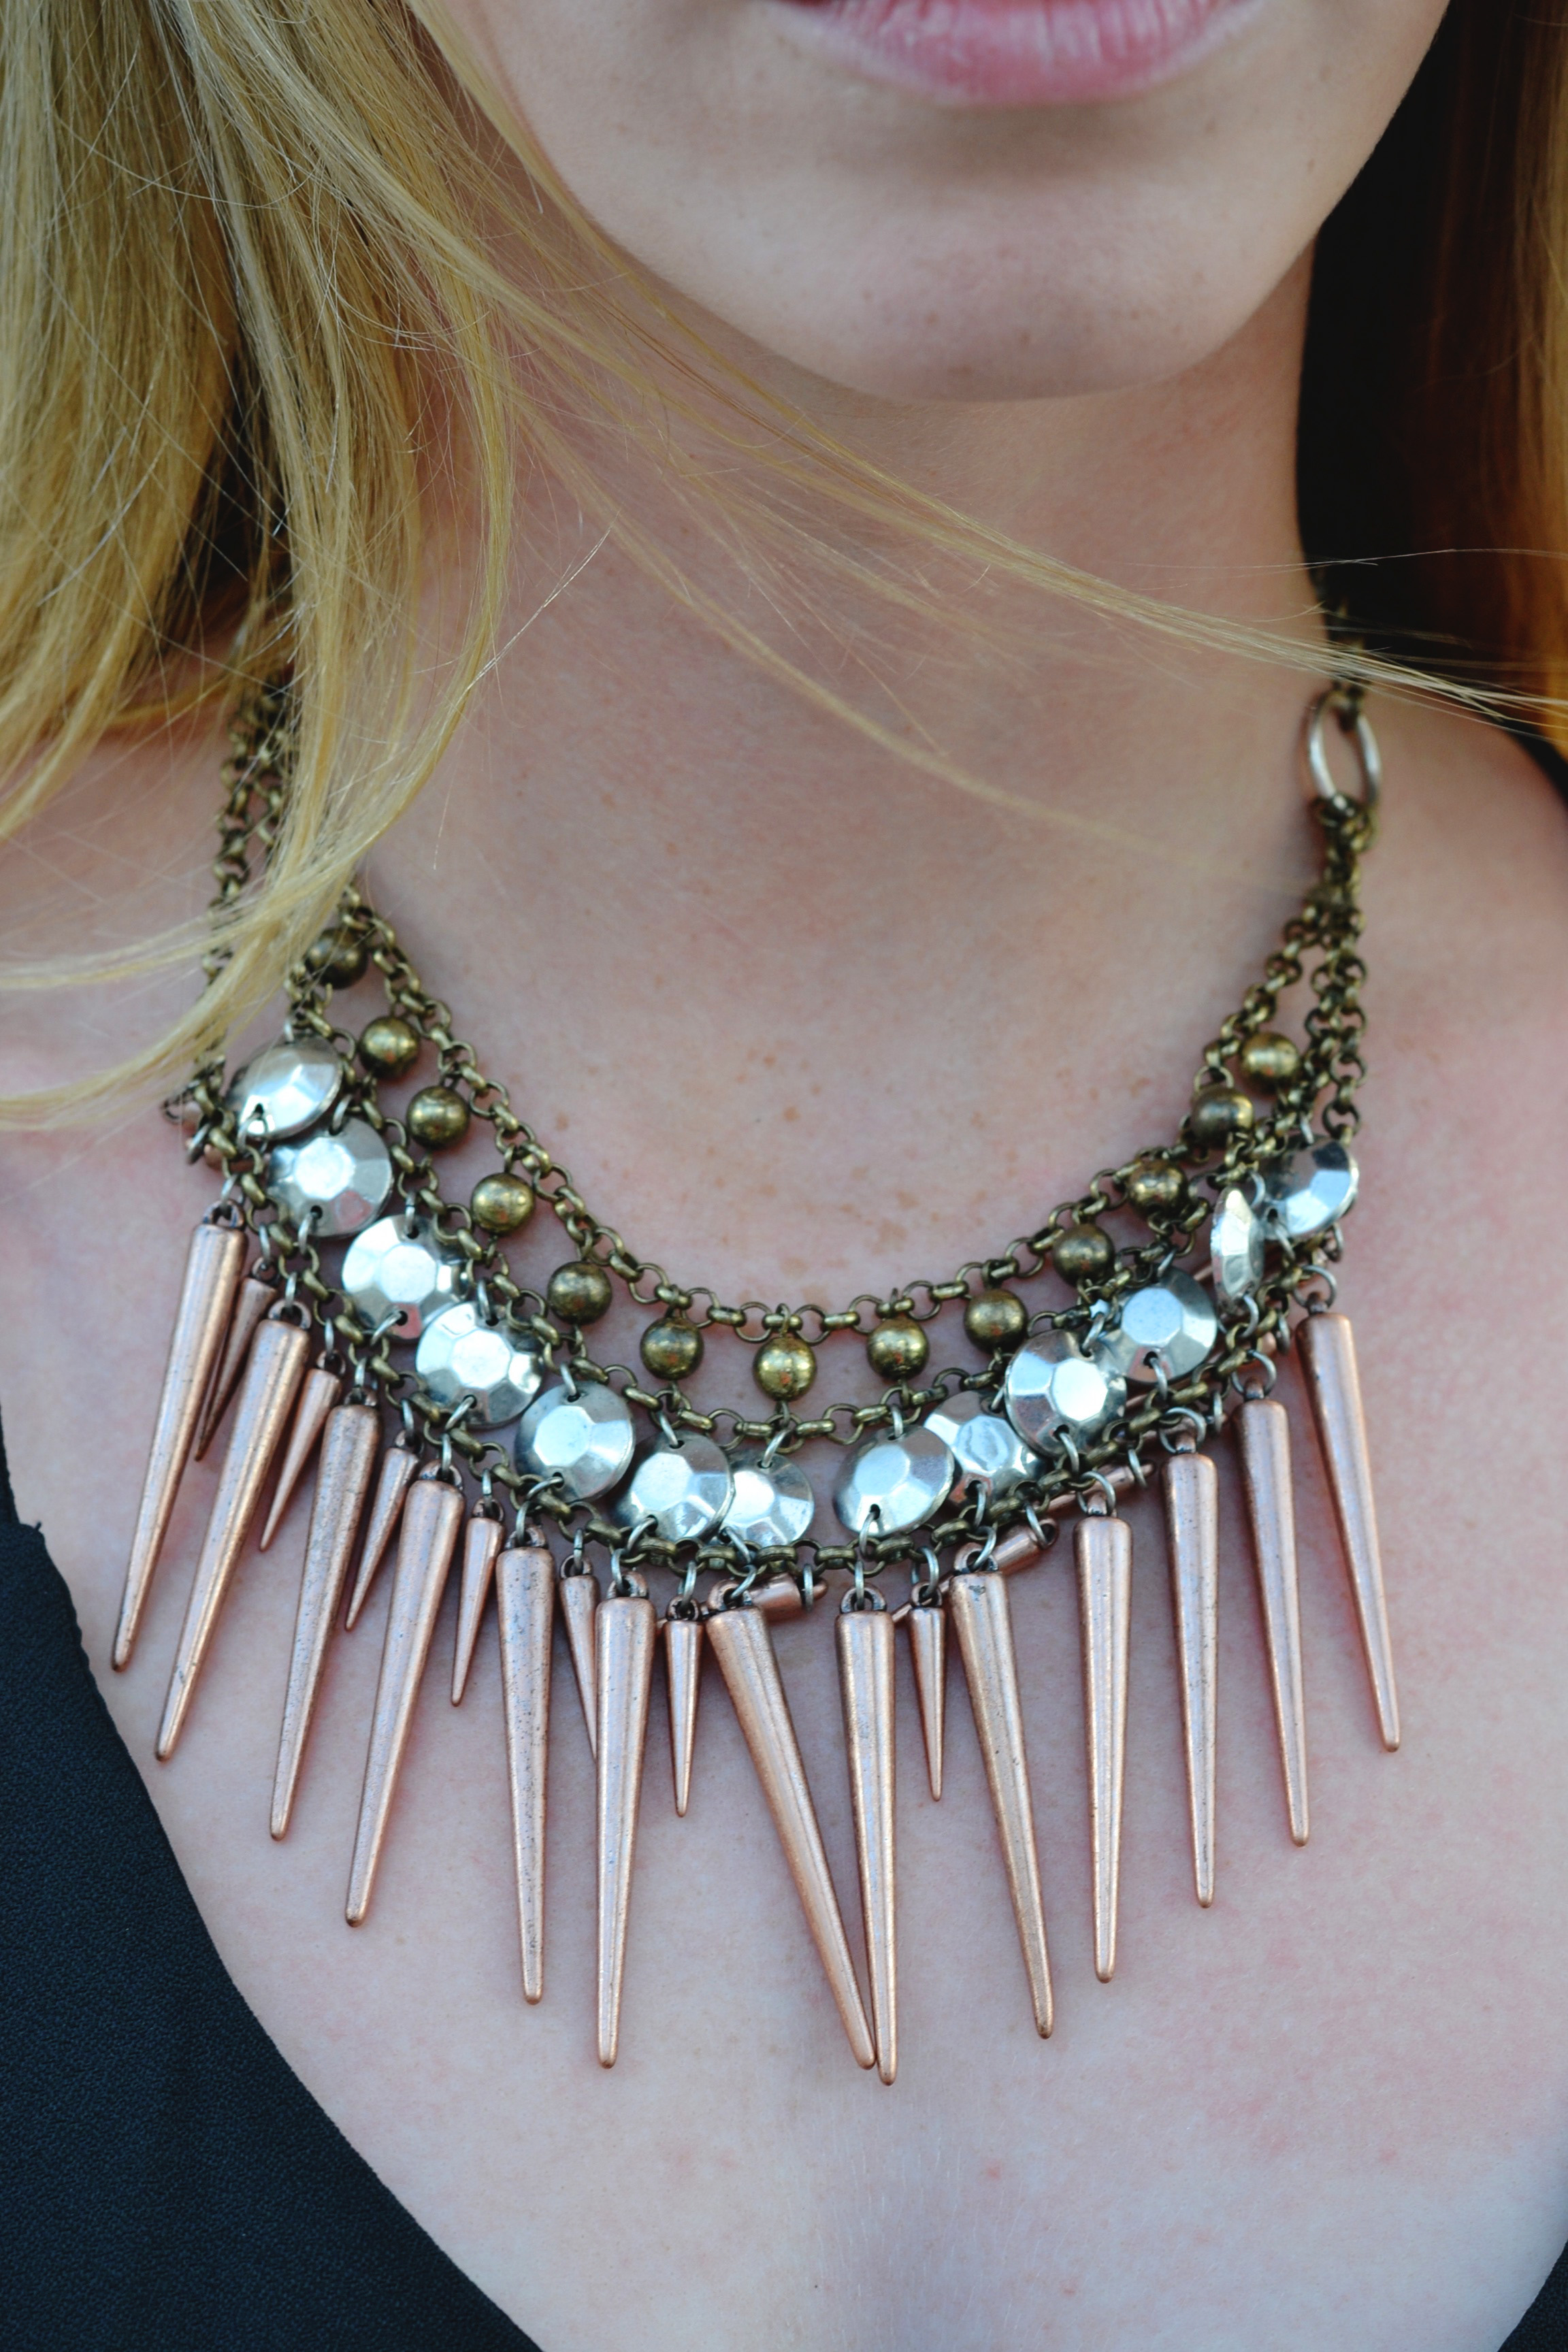 Spiked Necklace (via Girl x Garment)